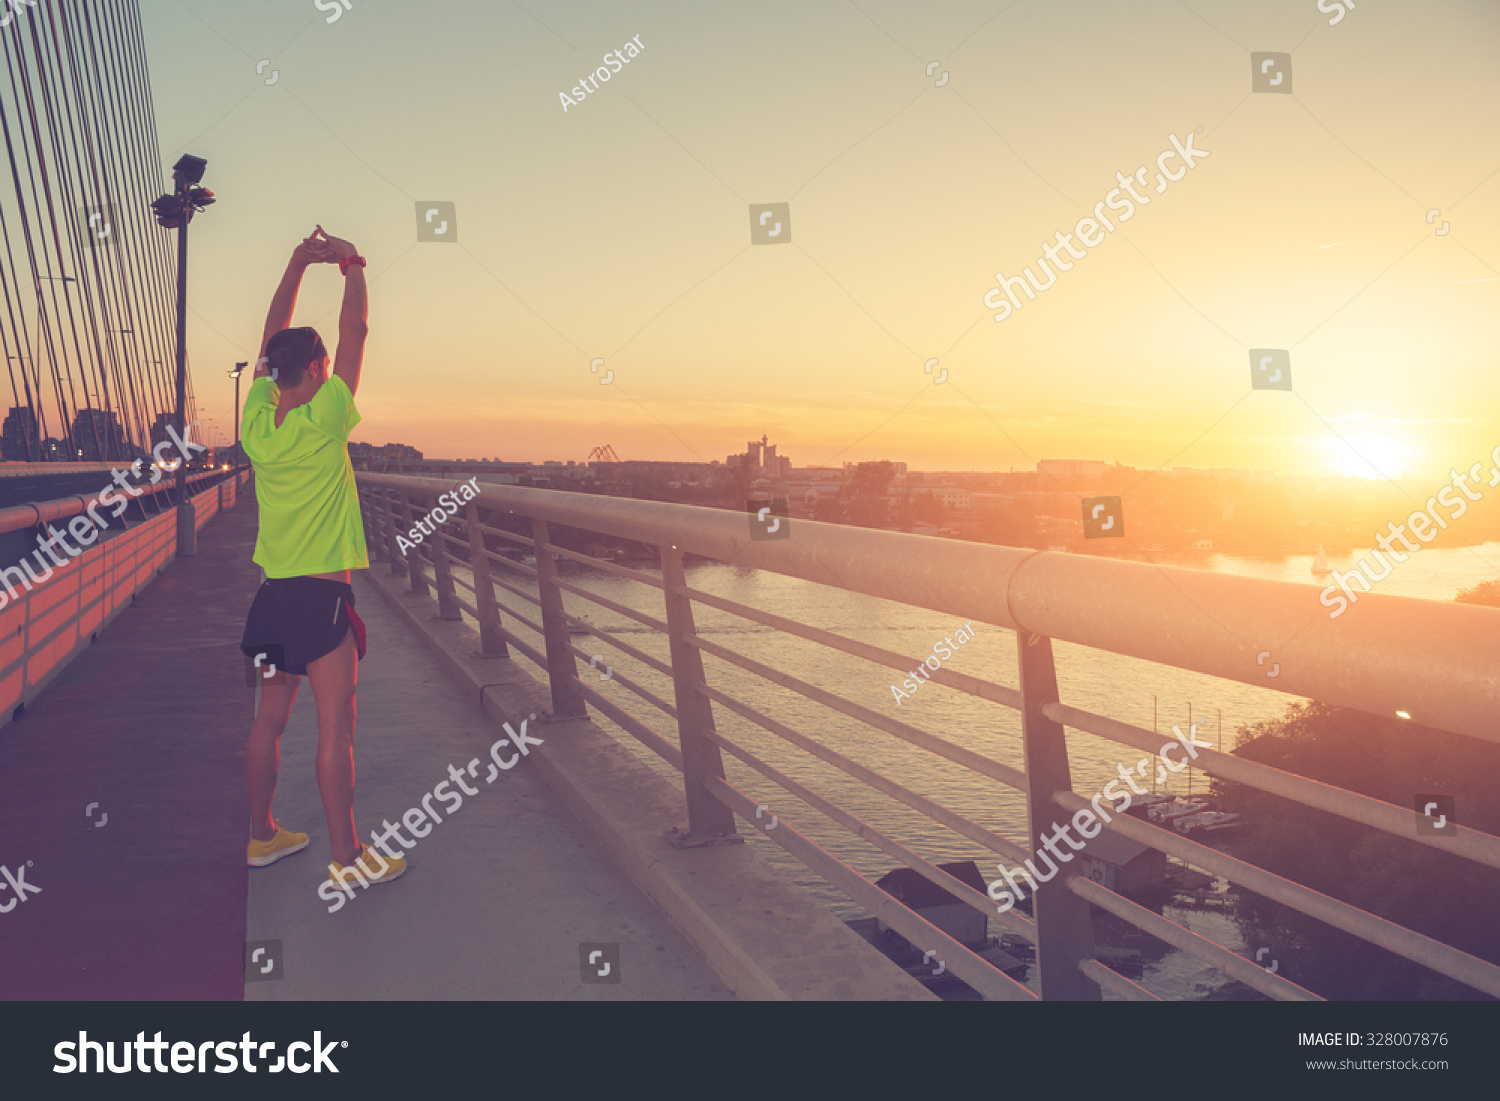 Stretching after jogging on a bridge